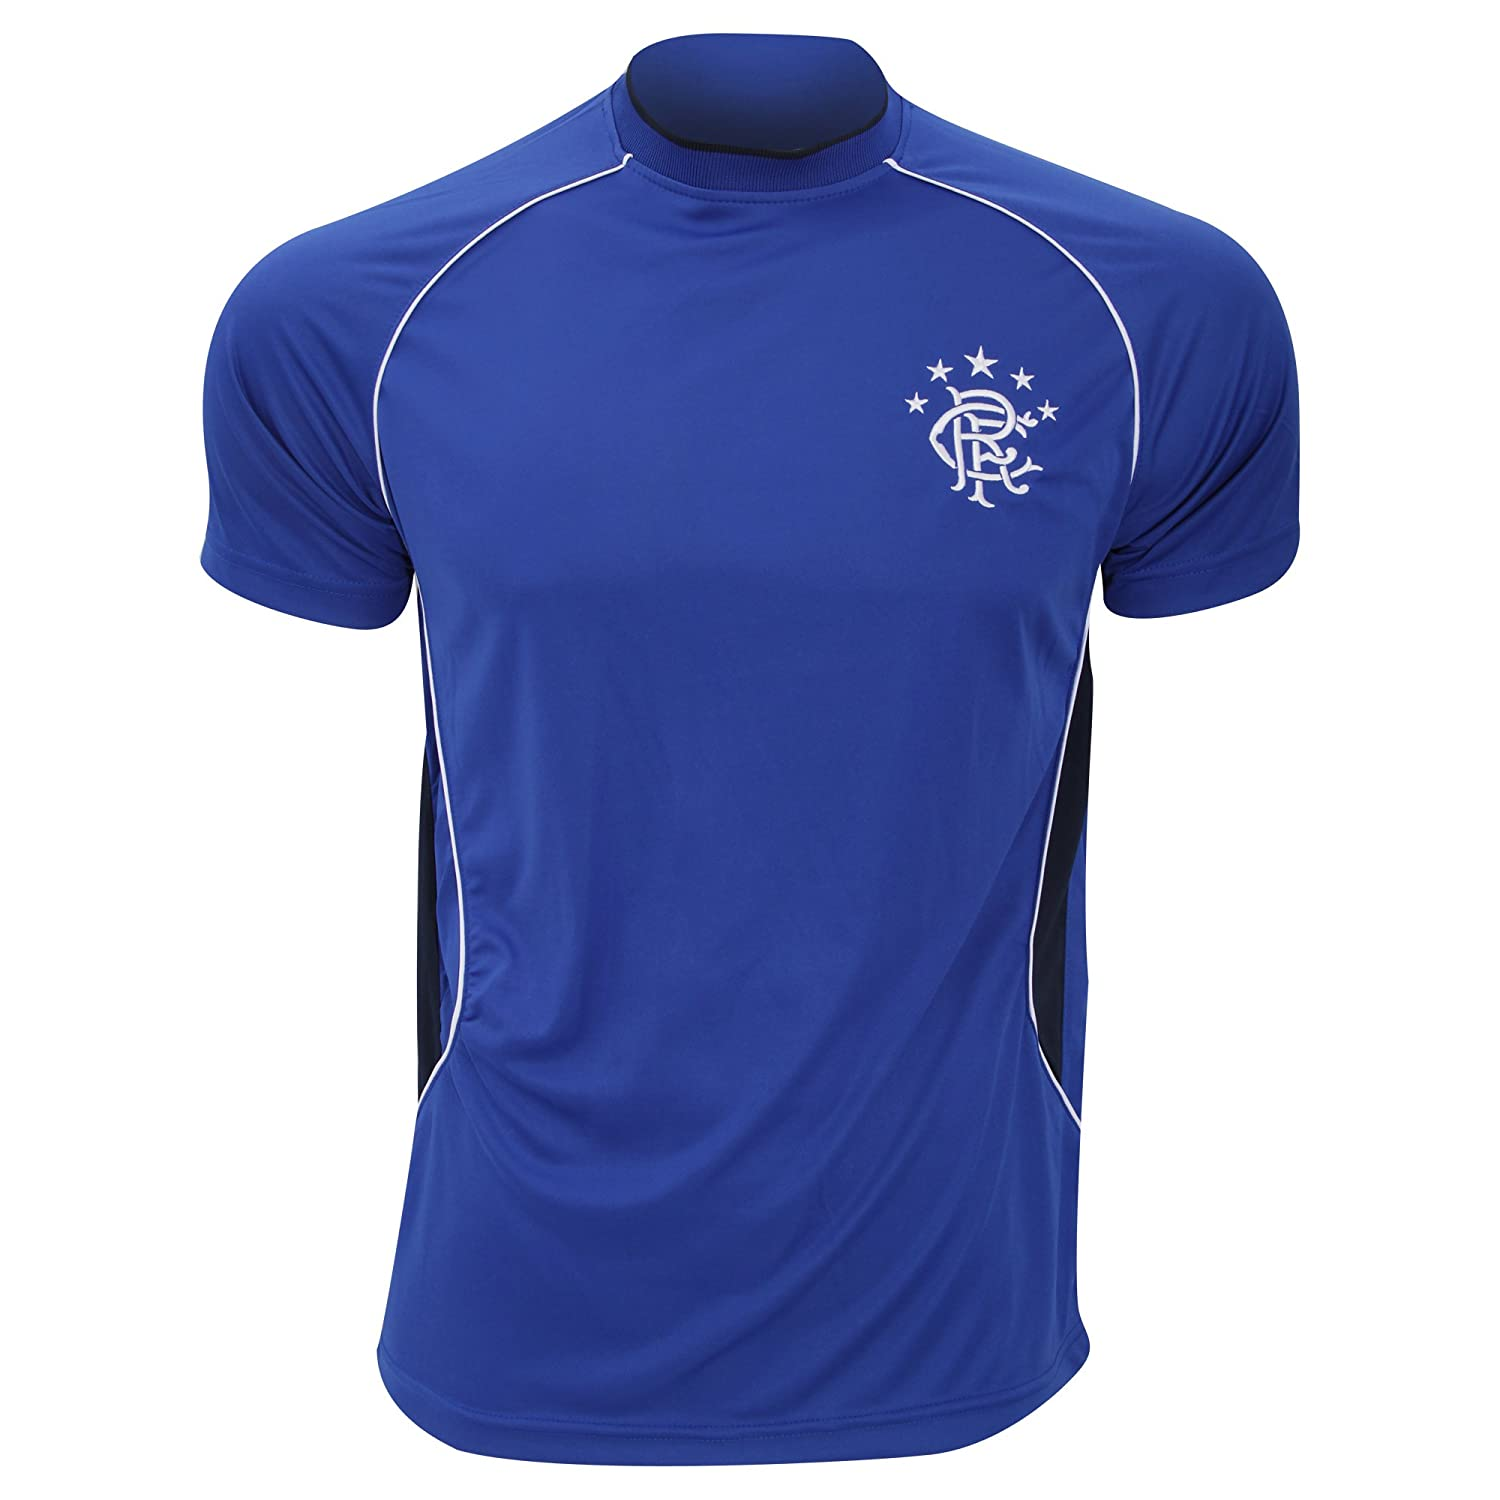 Amazon.com  Rangers FC Official Mens Blue Panel Soccer Football Crest T- Shirt (X-Small) (Blue)  Clothing 4bcd21303